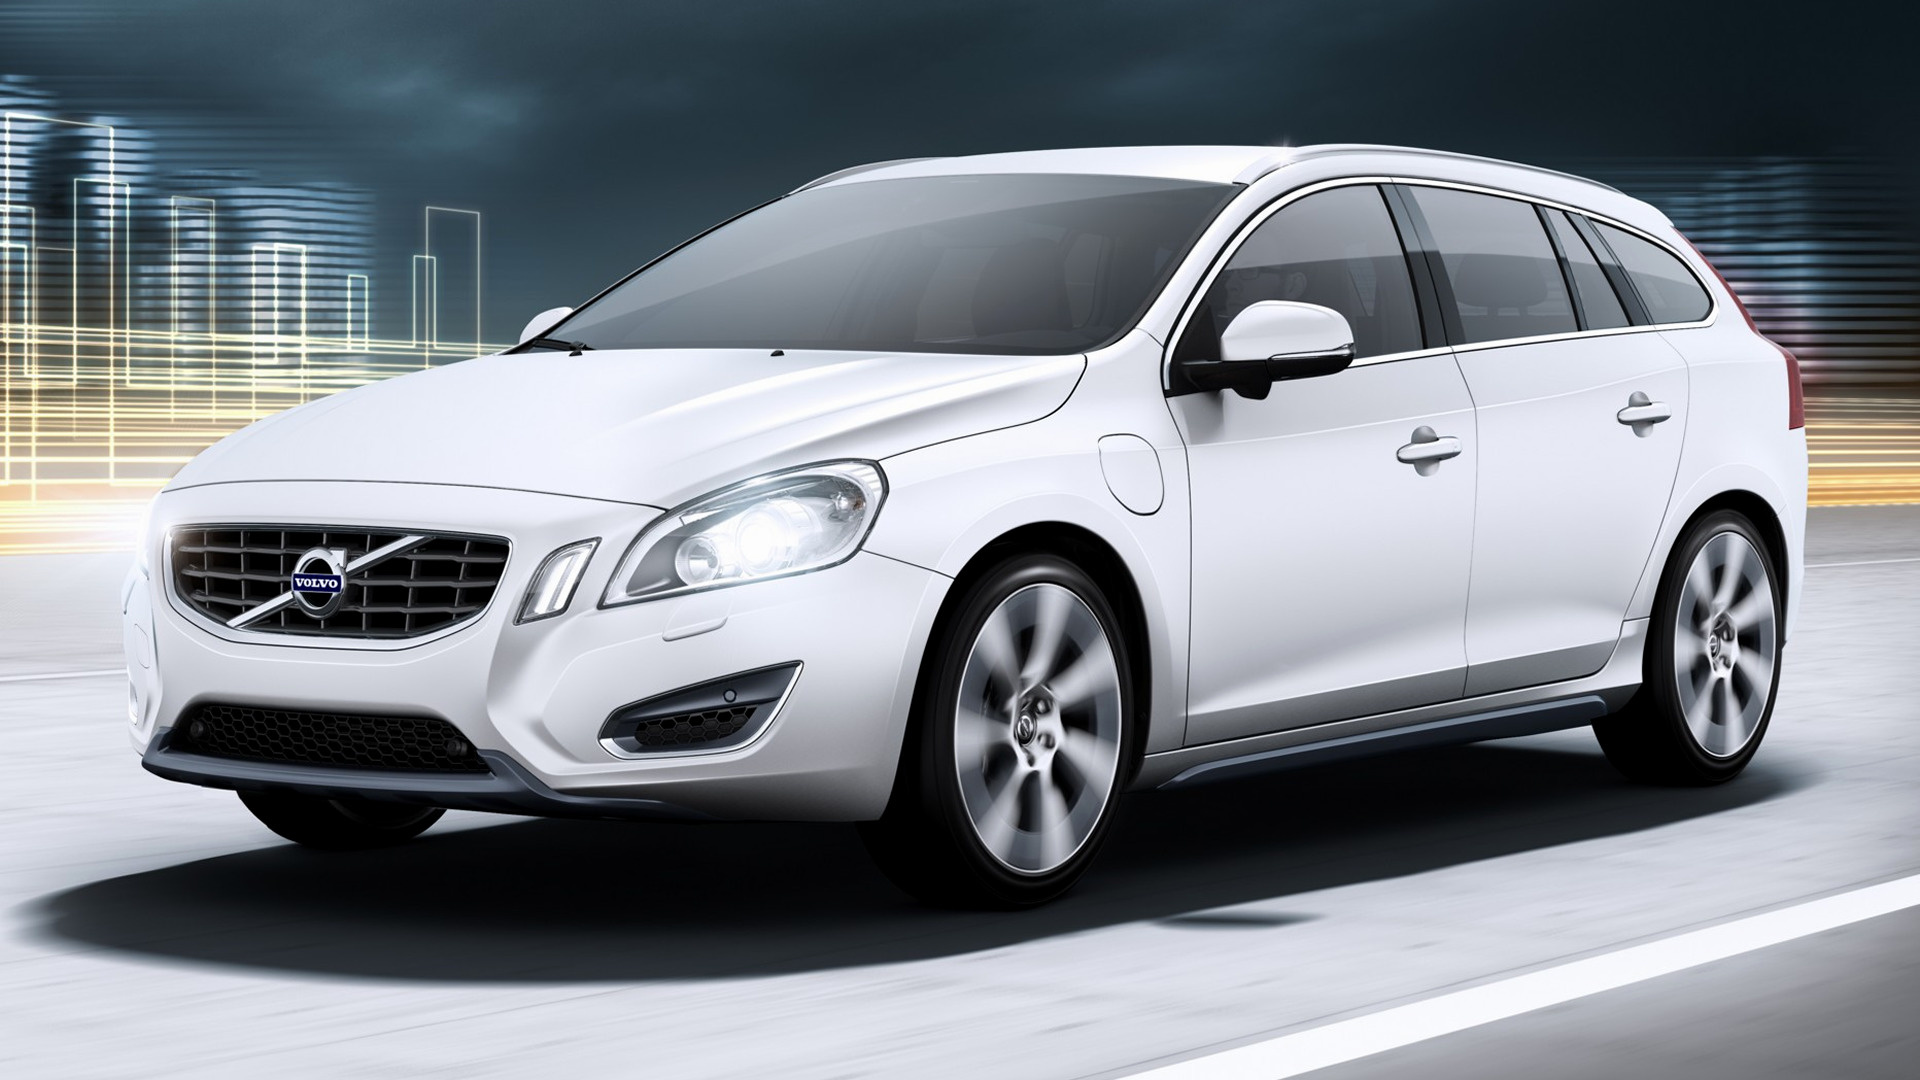 volvo v60 plug in hybrid prototype 2011 wallpapers and. Black Bedroom Furniture Sets. Home Design Ideas